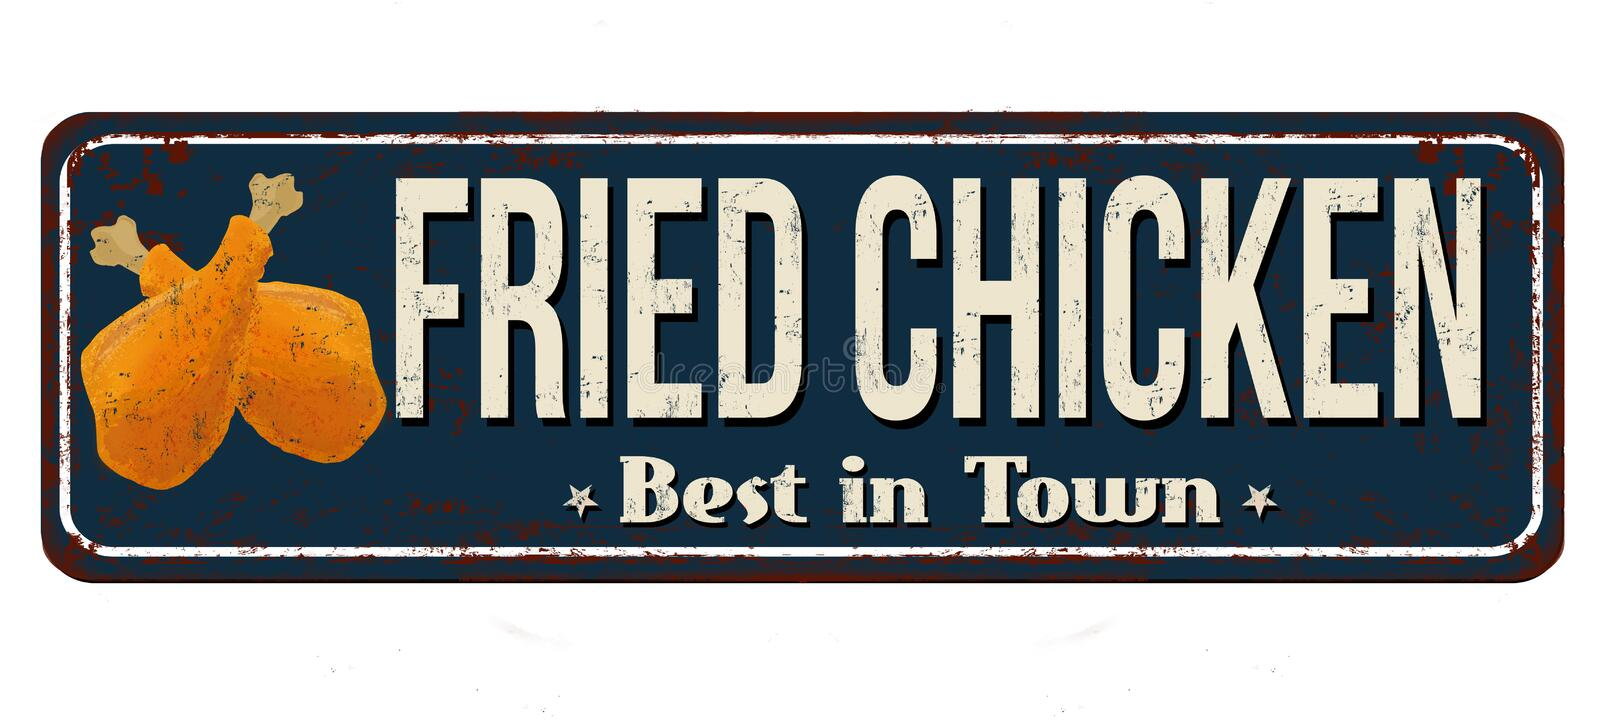 Fried chicken vintage rusty metal sign royalty free illustration